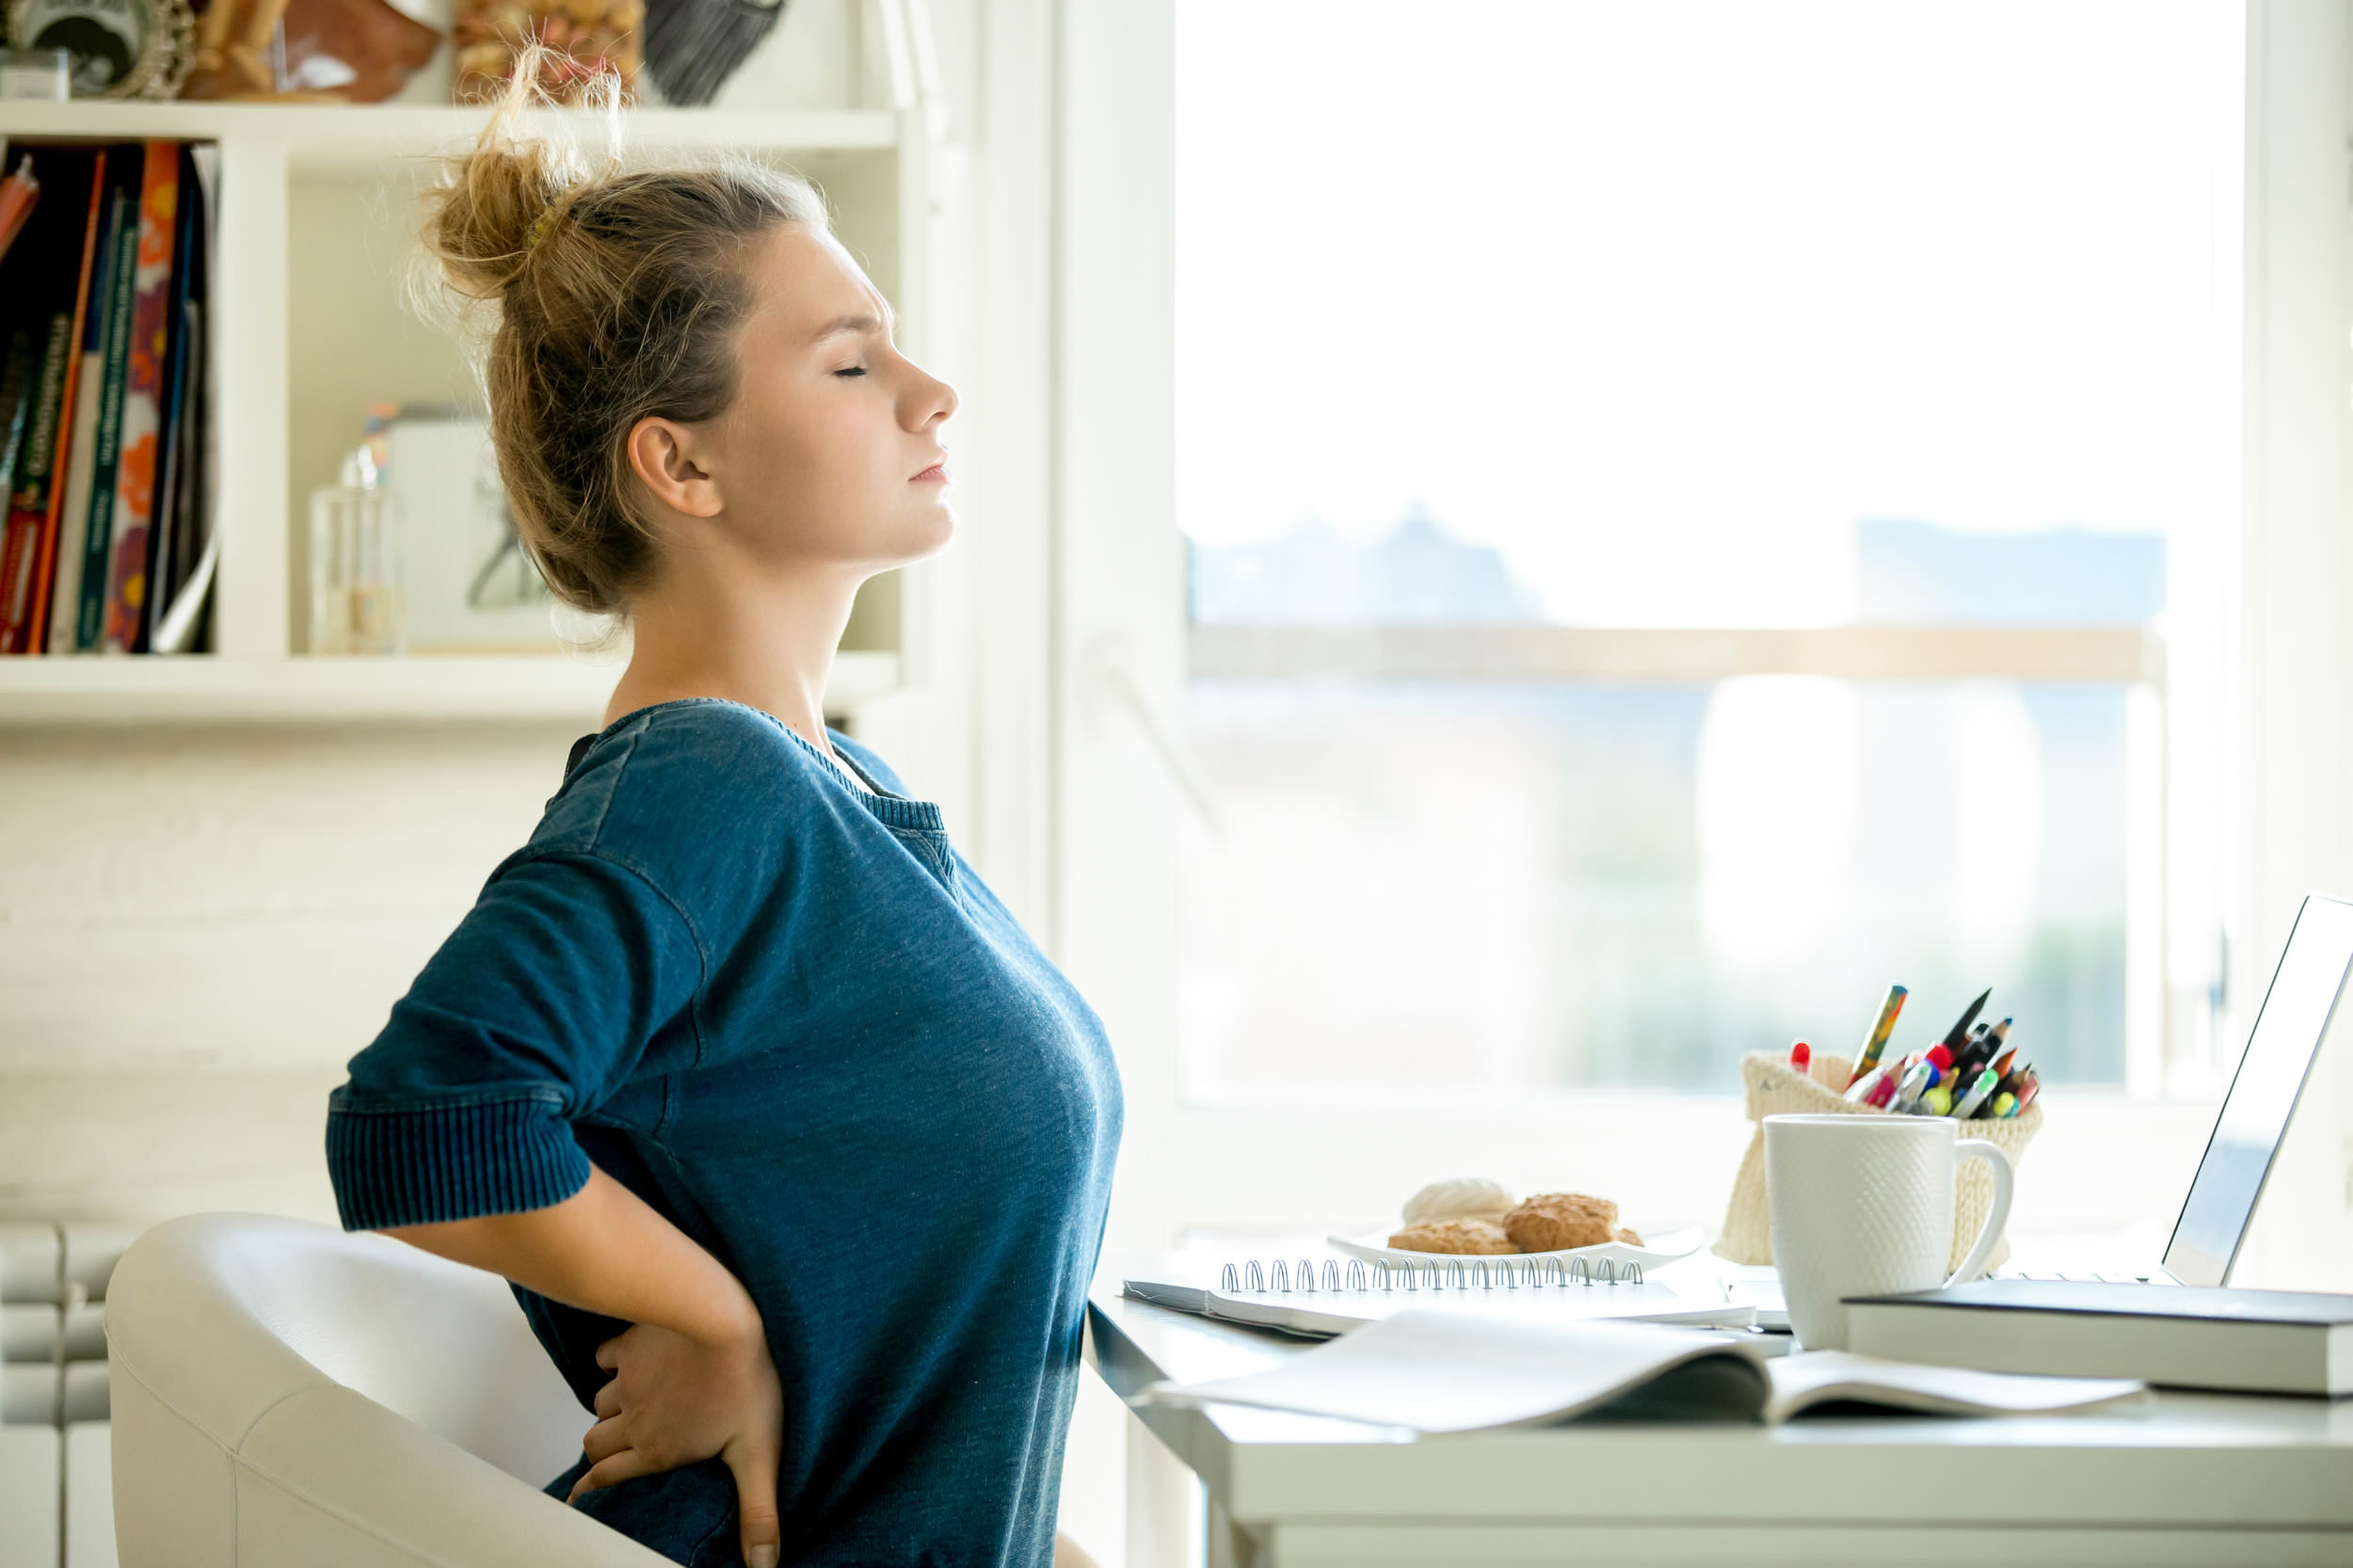 woman sitting at table with hands on back in pain.jpg